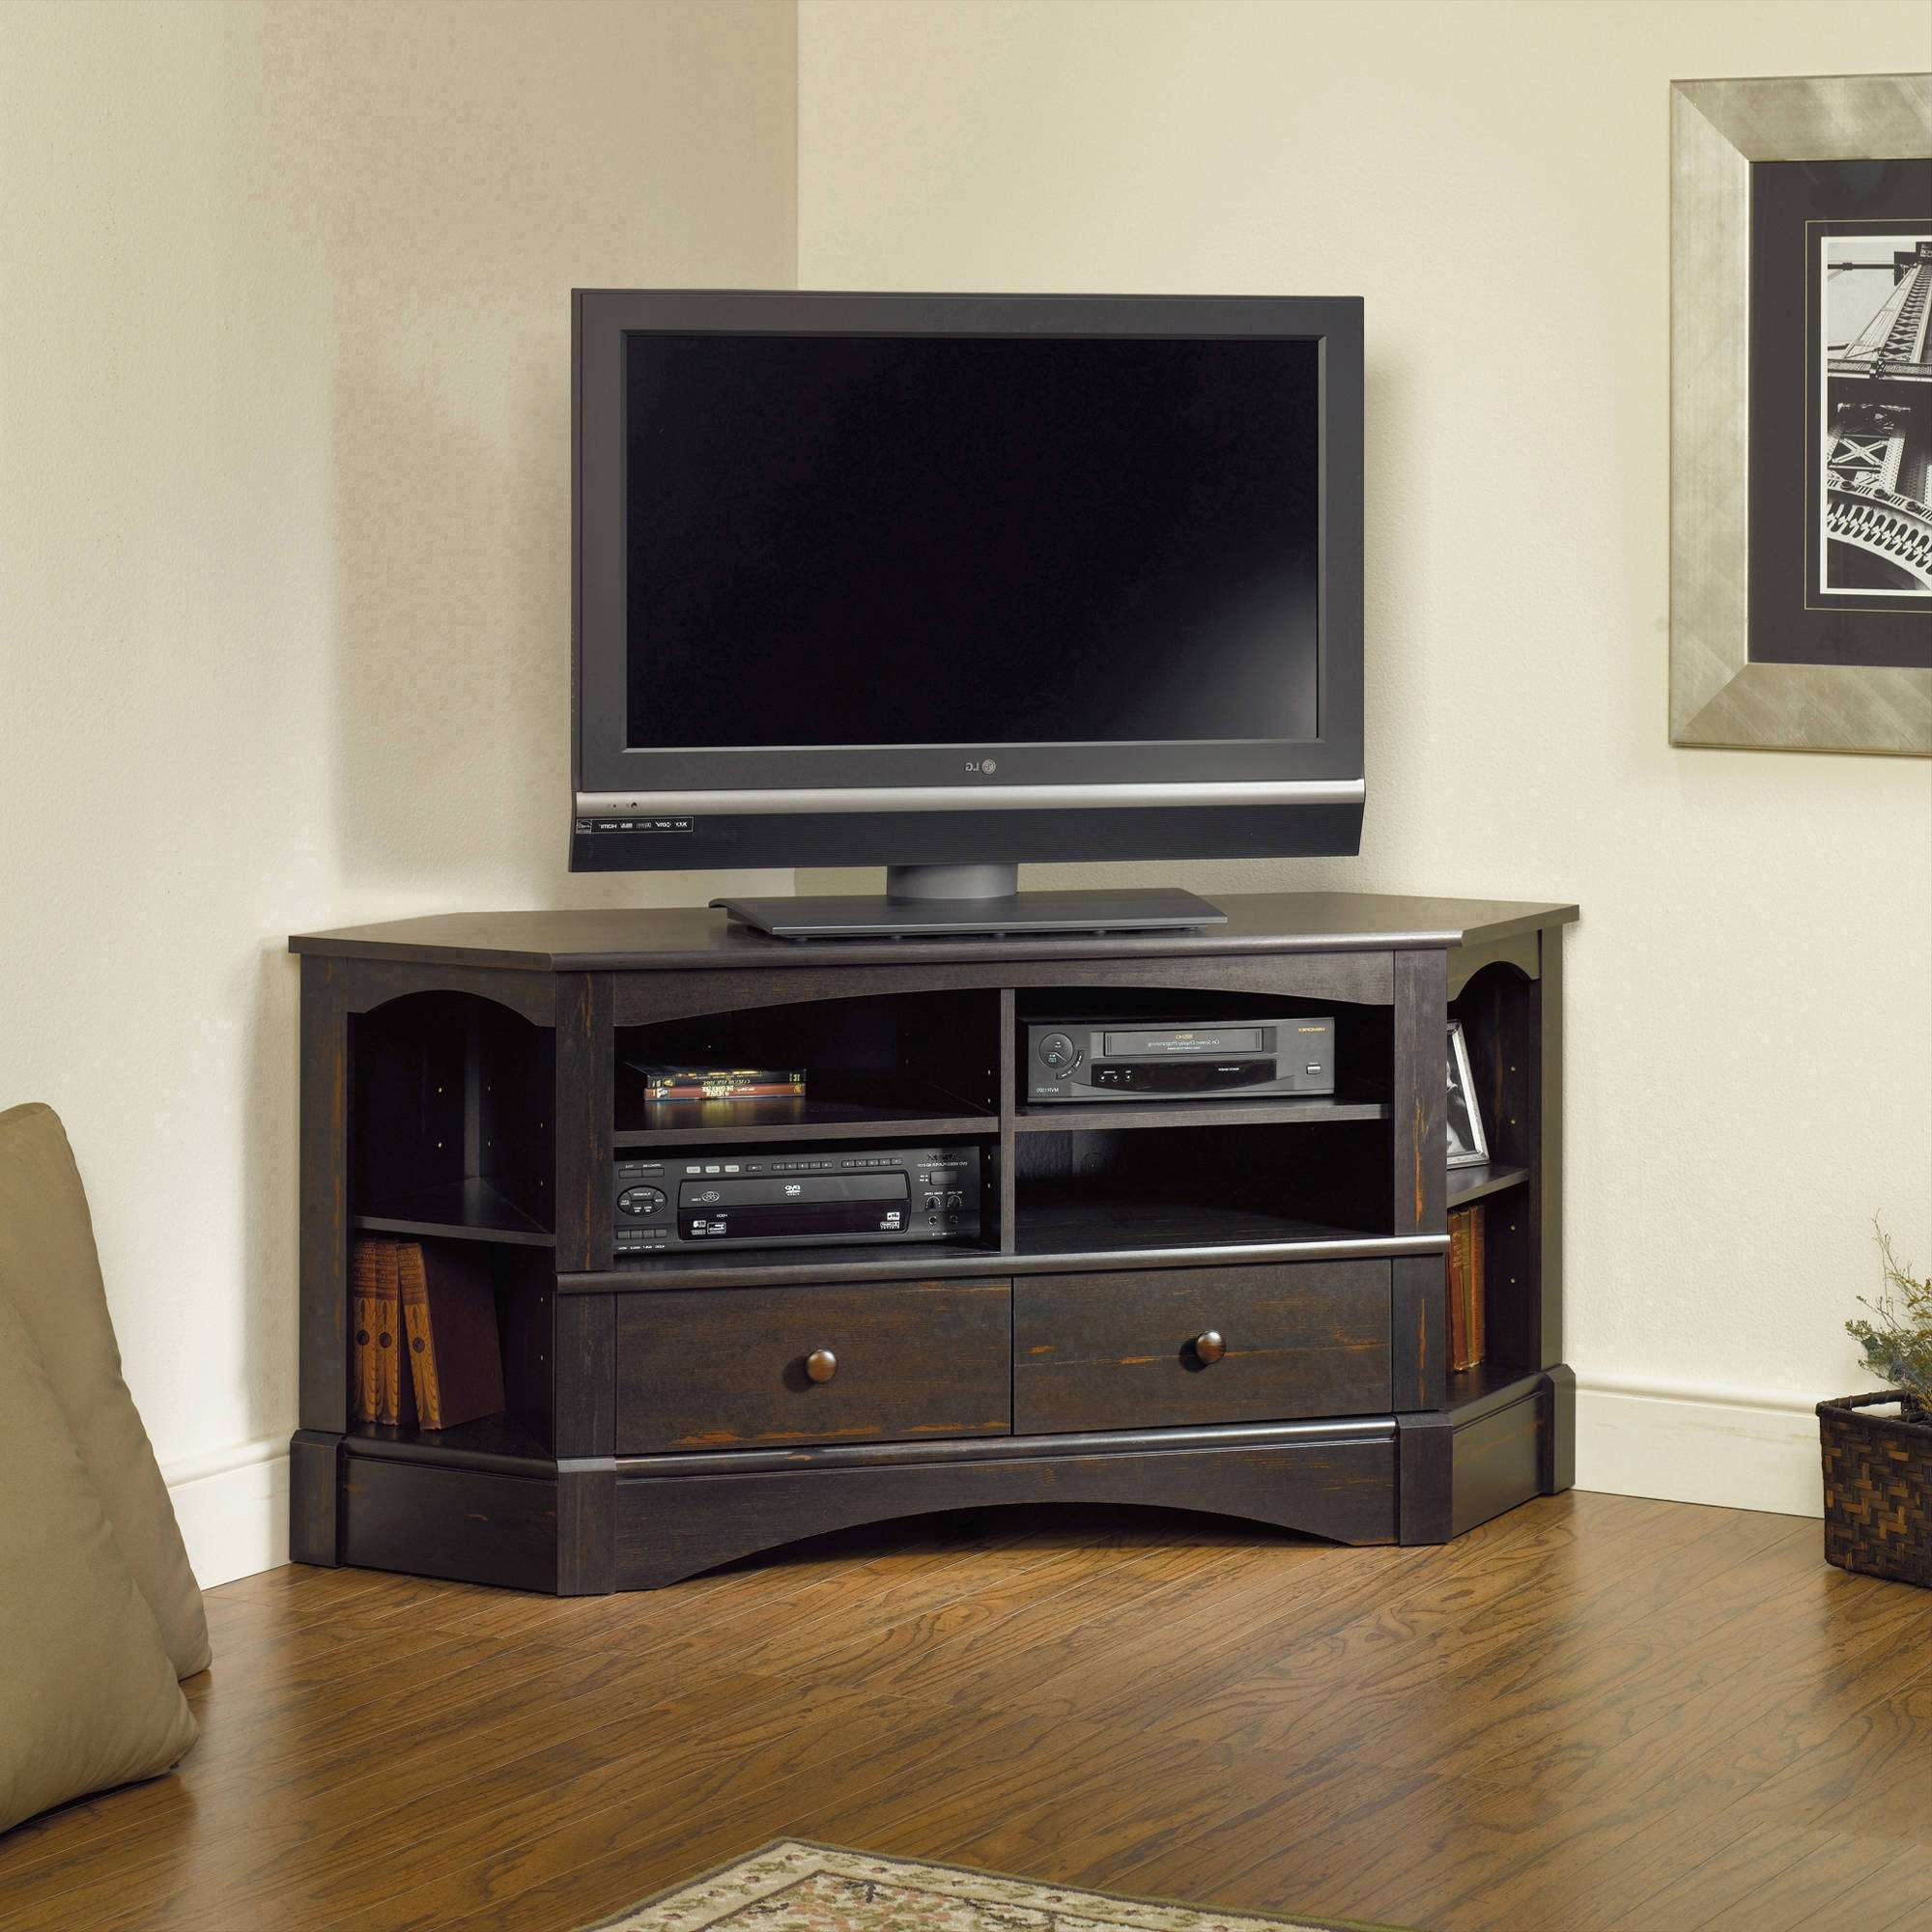 Tv Stand : 32 Unusual 55 Inch Corner Tv Stand With Mount Images For Corner Tv Stands For 60 Inch Tv (View 8 of 15)